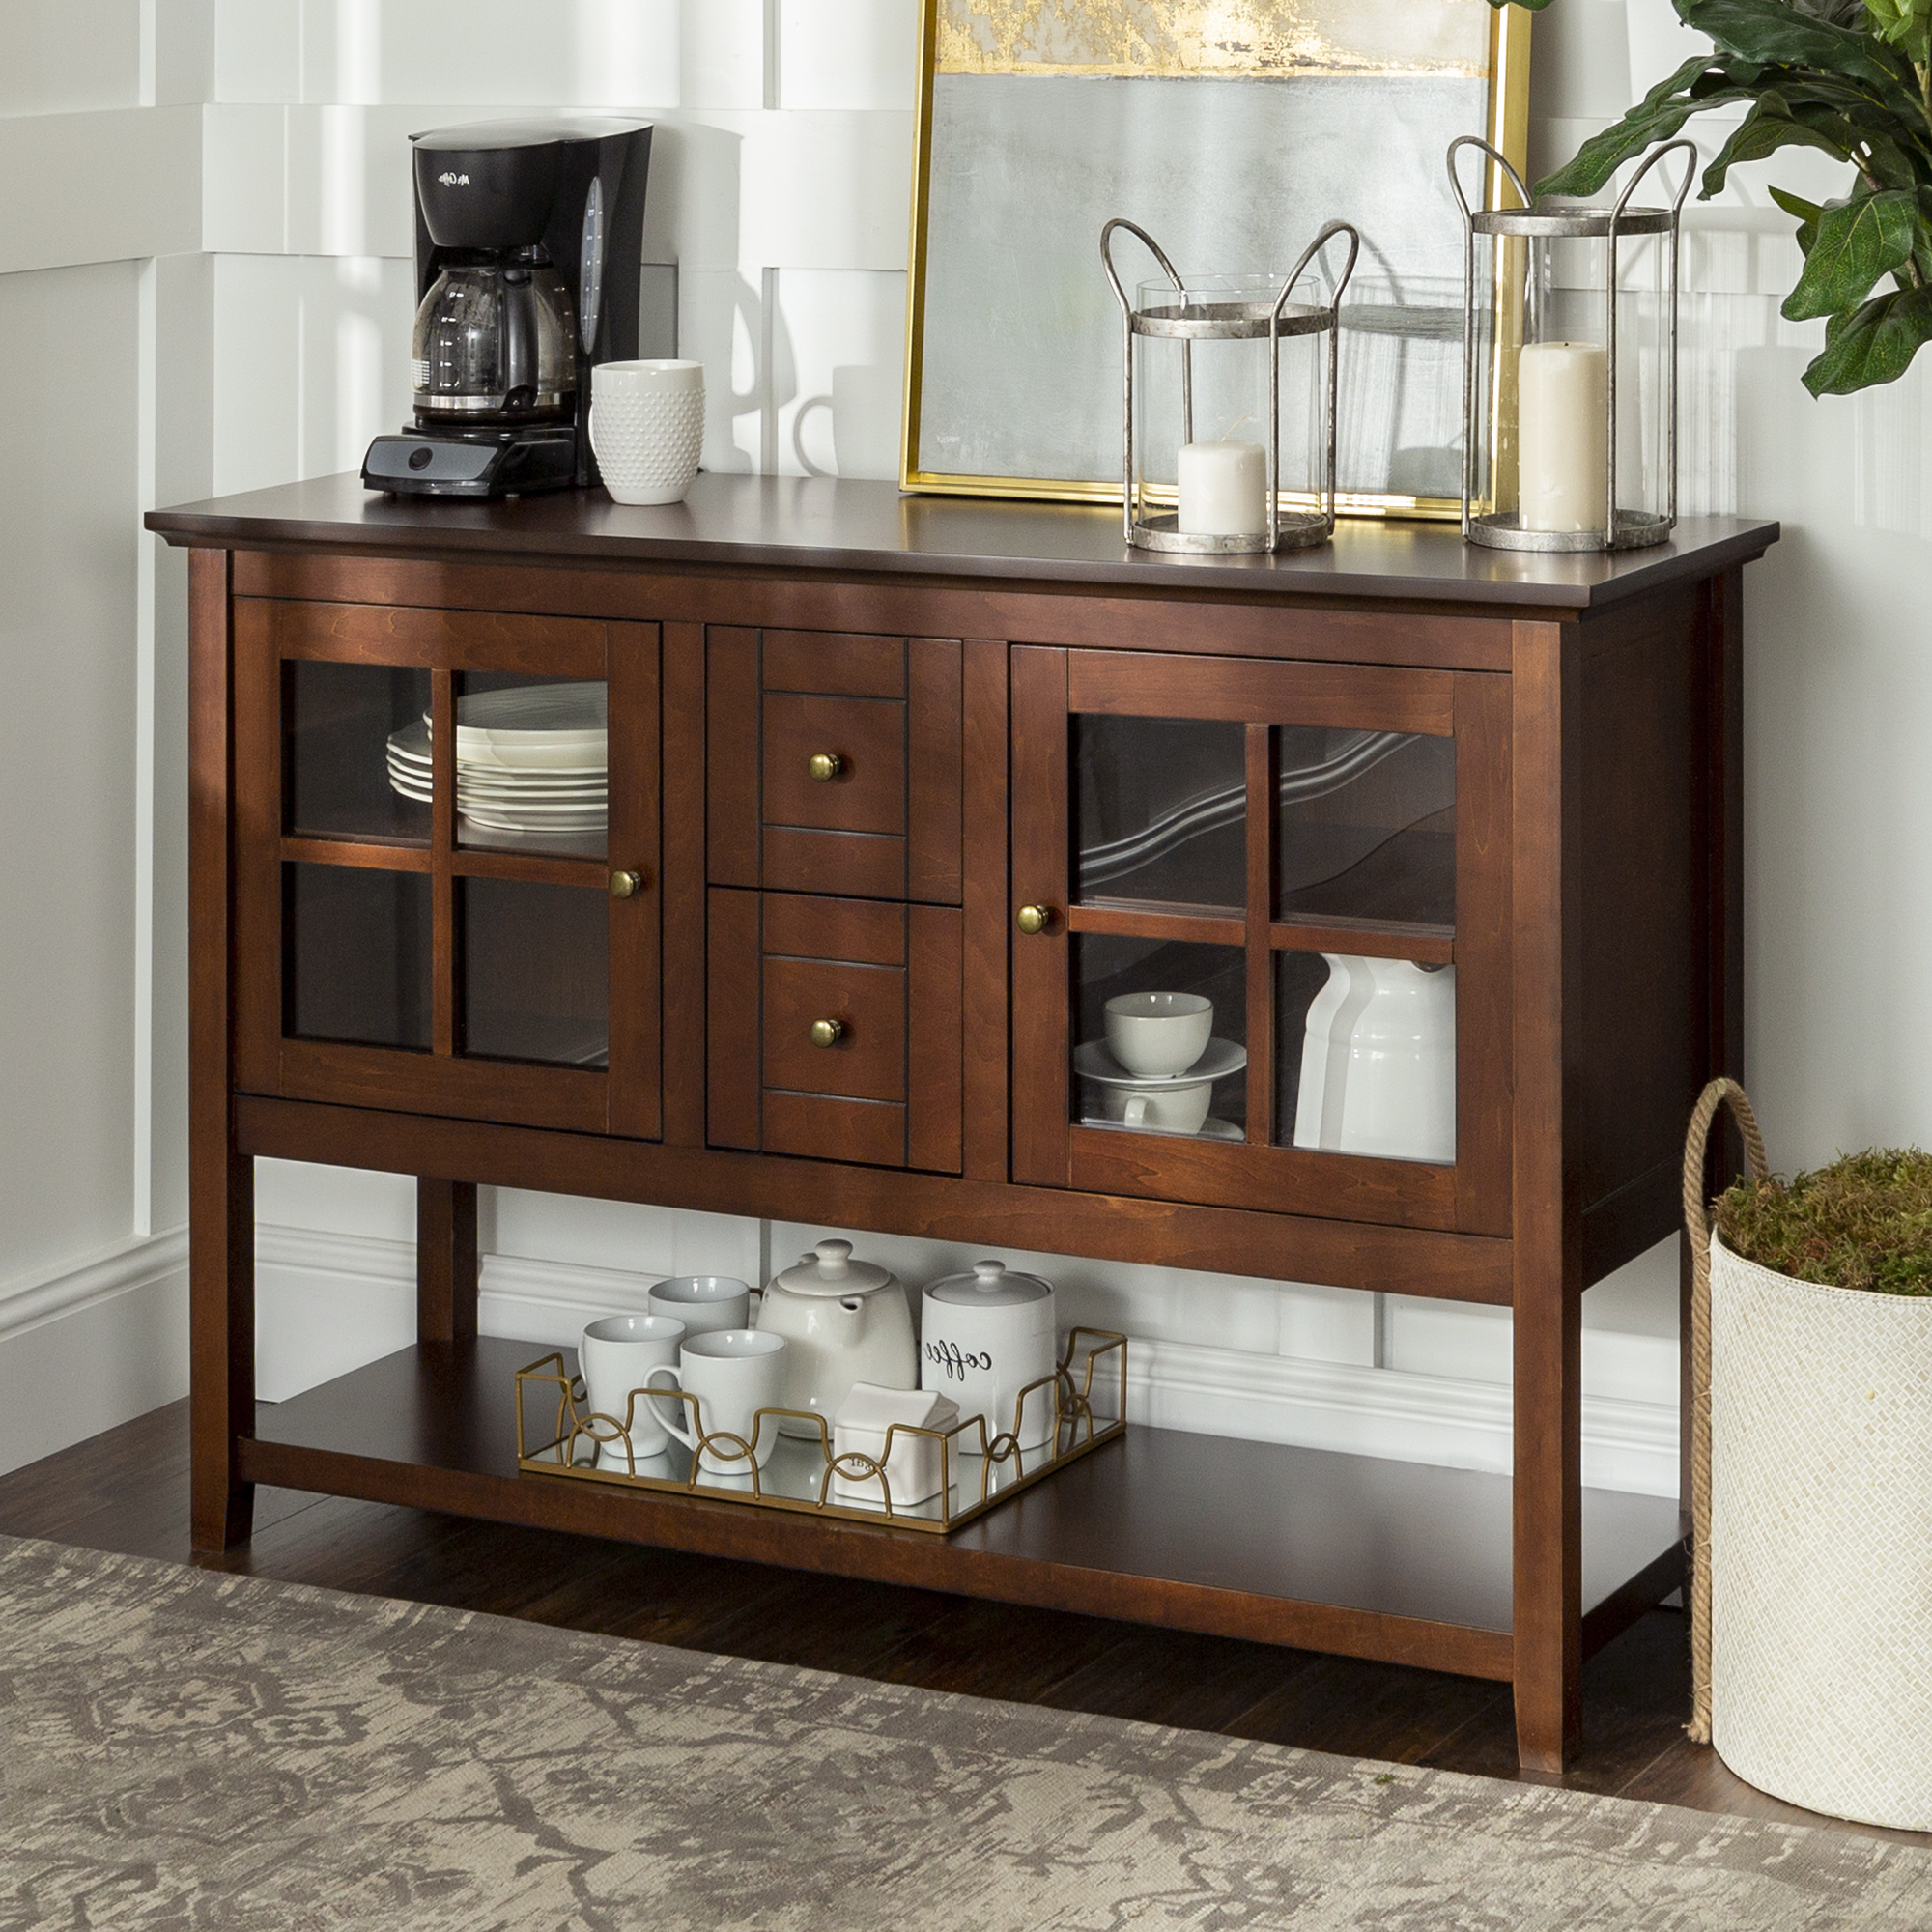 """52"""" Wood Console Table Buffet Tv Stand For Tv's Up To 55 Intended For Twila Tv Stands For Tvs Up To 55"""" (View 16 of 20)"""